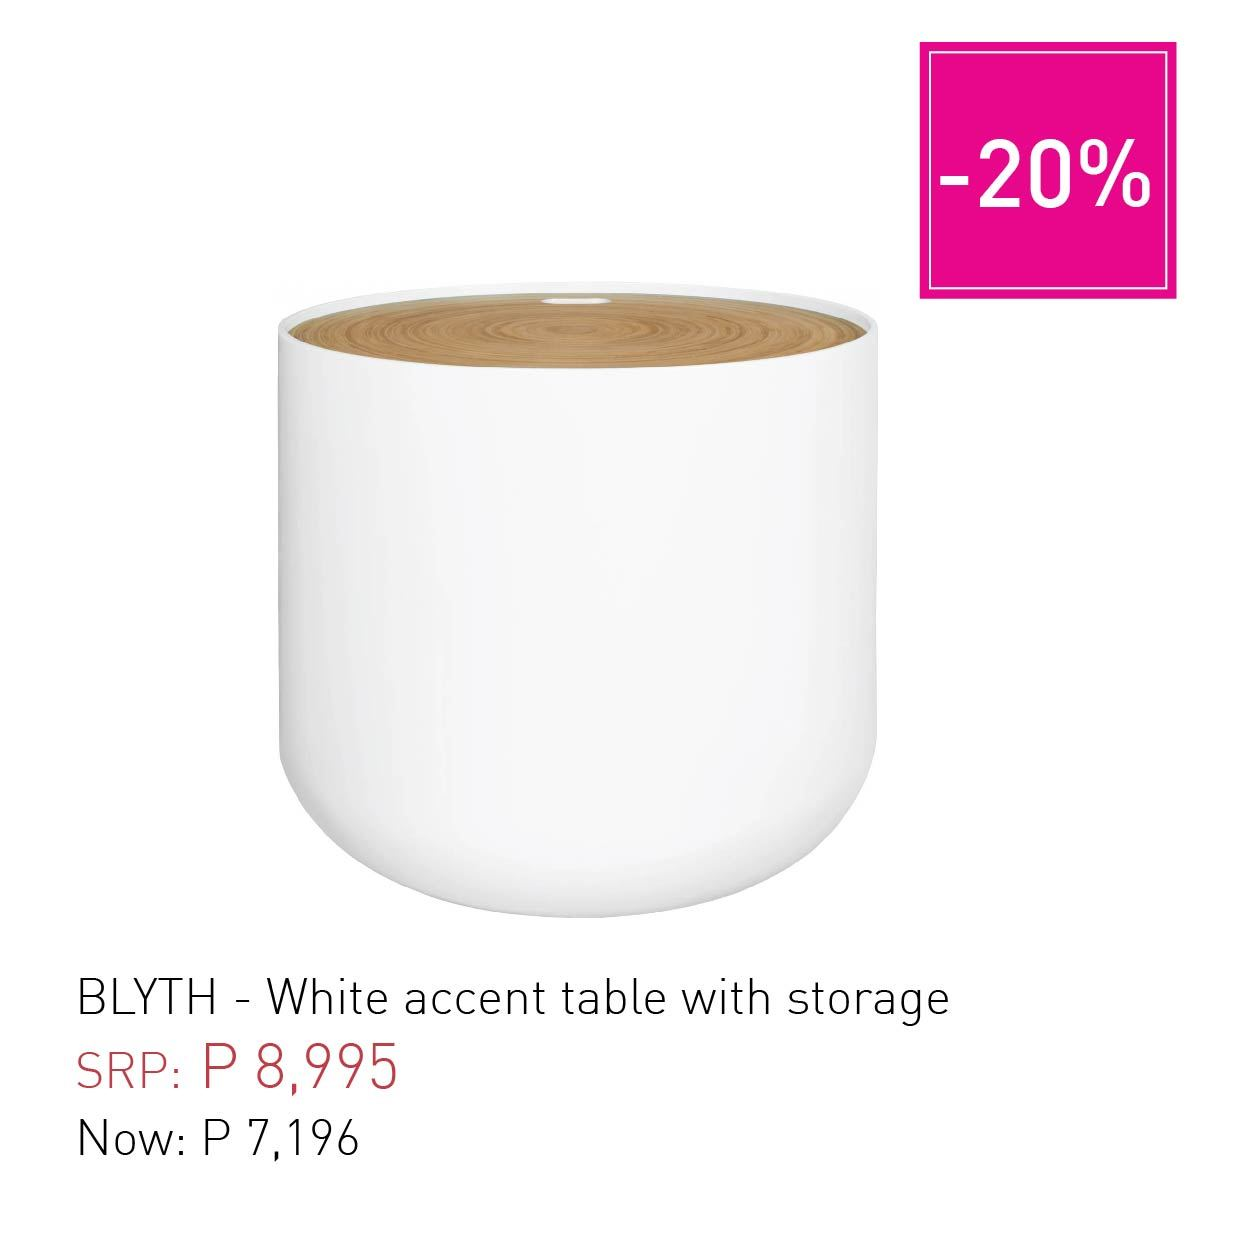 blyth white accent table with storage habitat manila childrens lamps ikea bedroom side tables target room essentials cordless lights small entryway console round lucite concrete